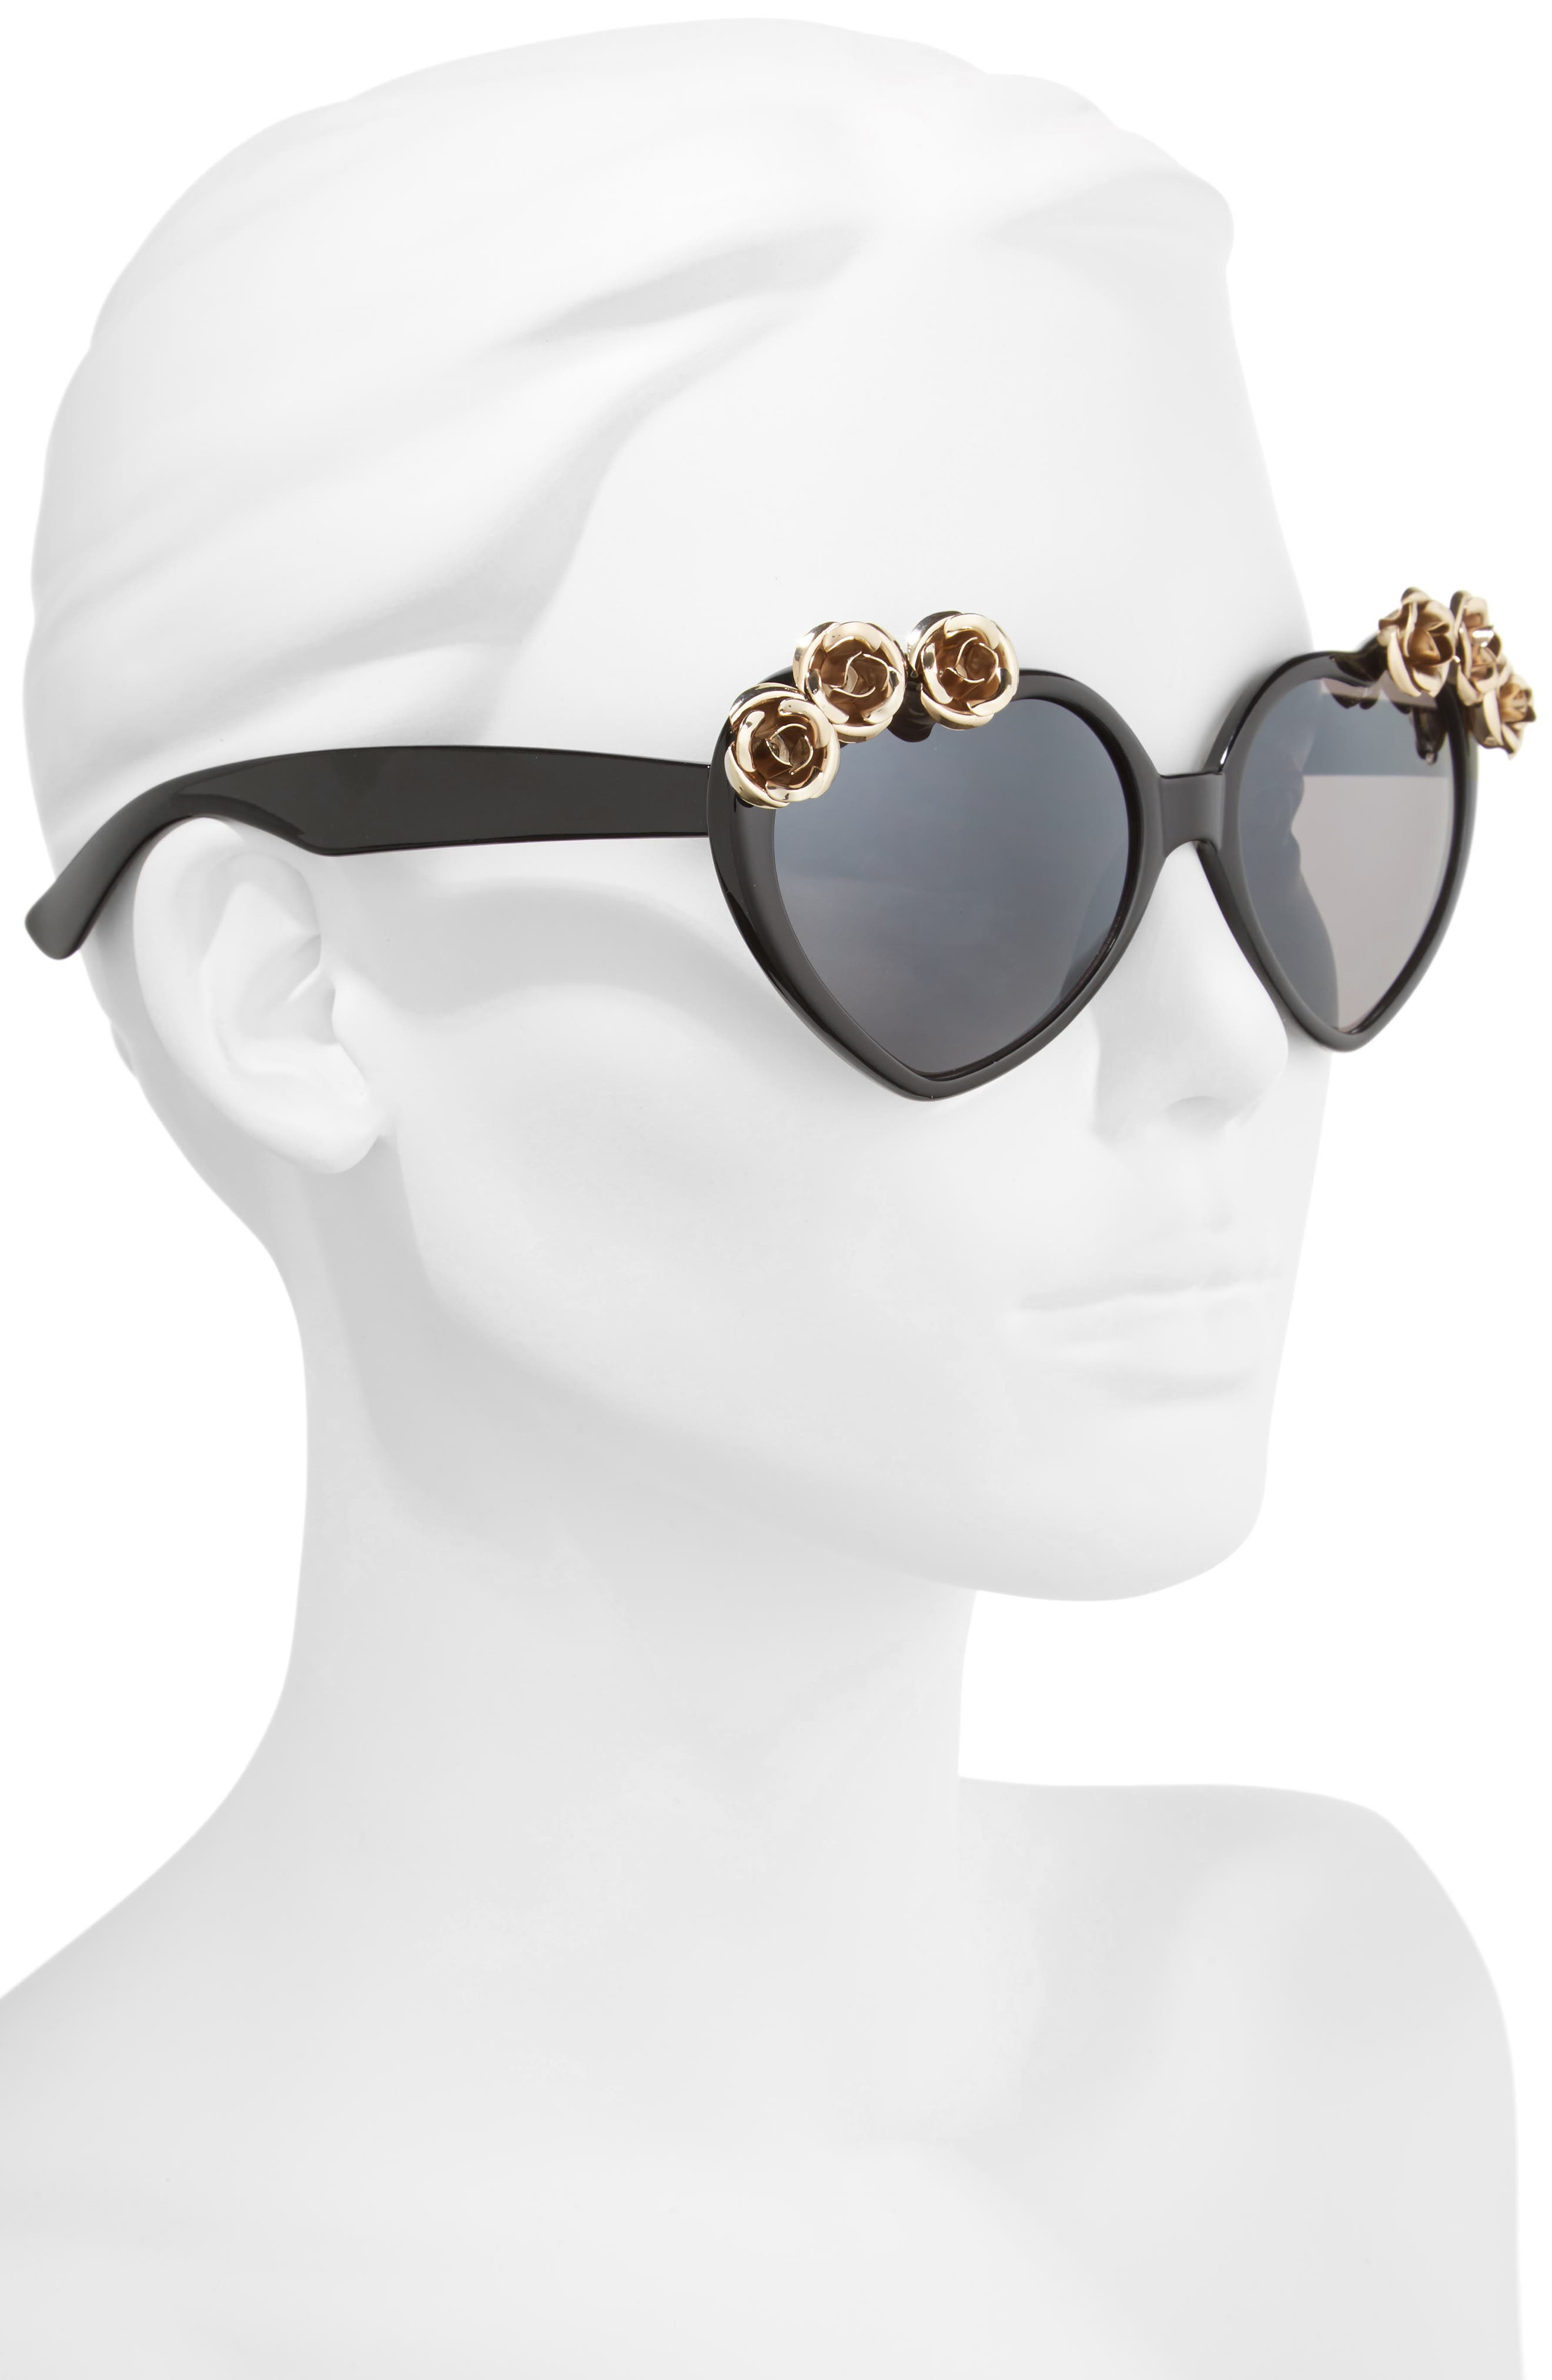 58mm Rose Embellished Heart Sunglasses,                             Alternate thumbnail 2, color,                             Black/ Gold